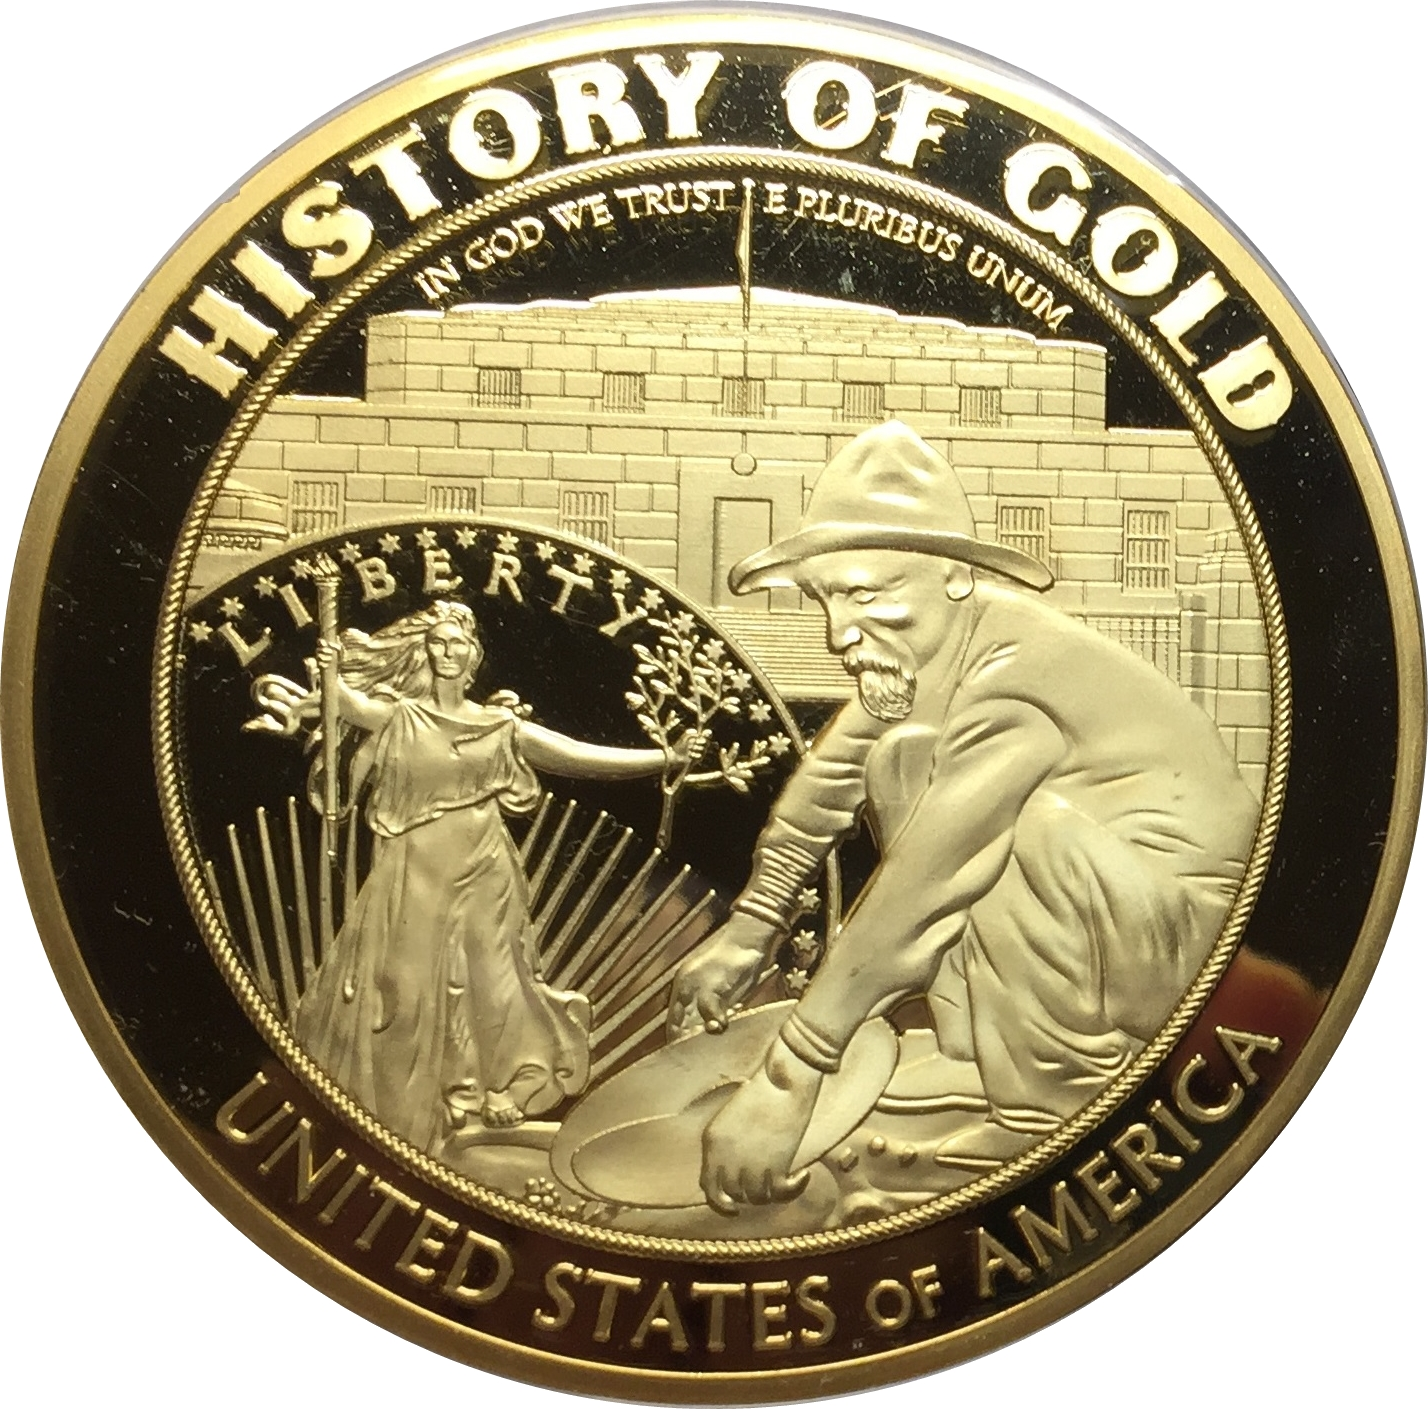 States depository trust and